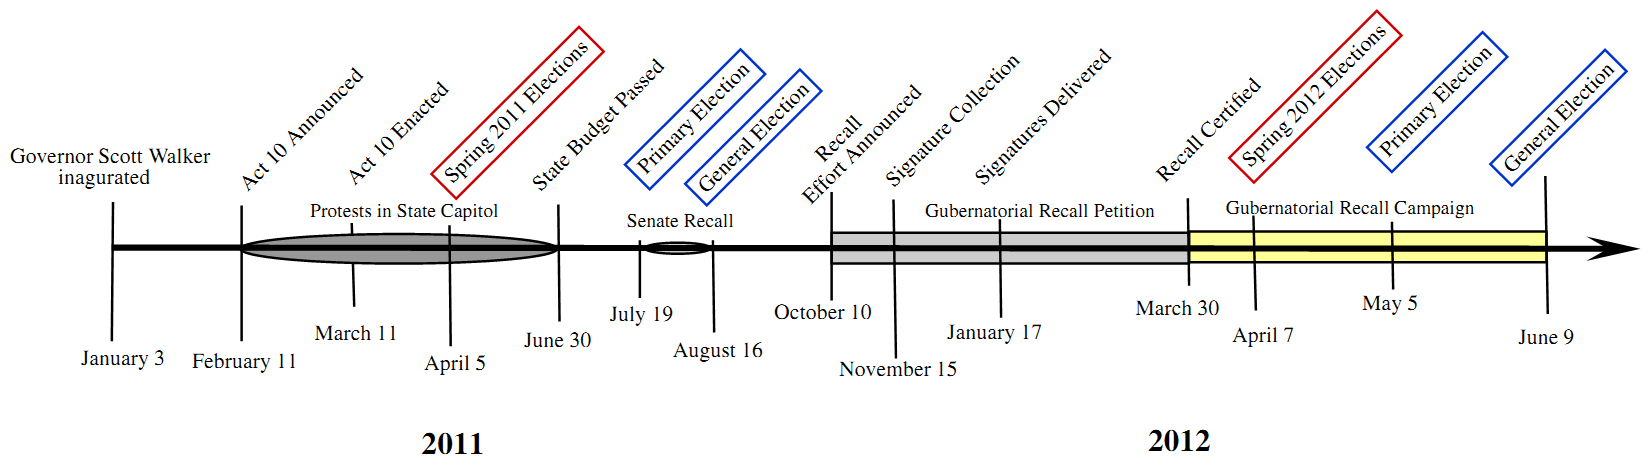 Wisconsin Political Timeline 2011-Present